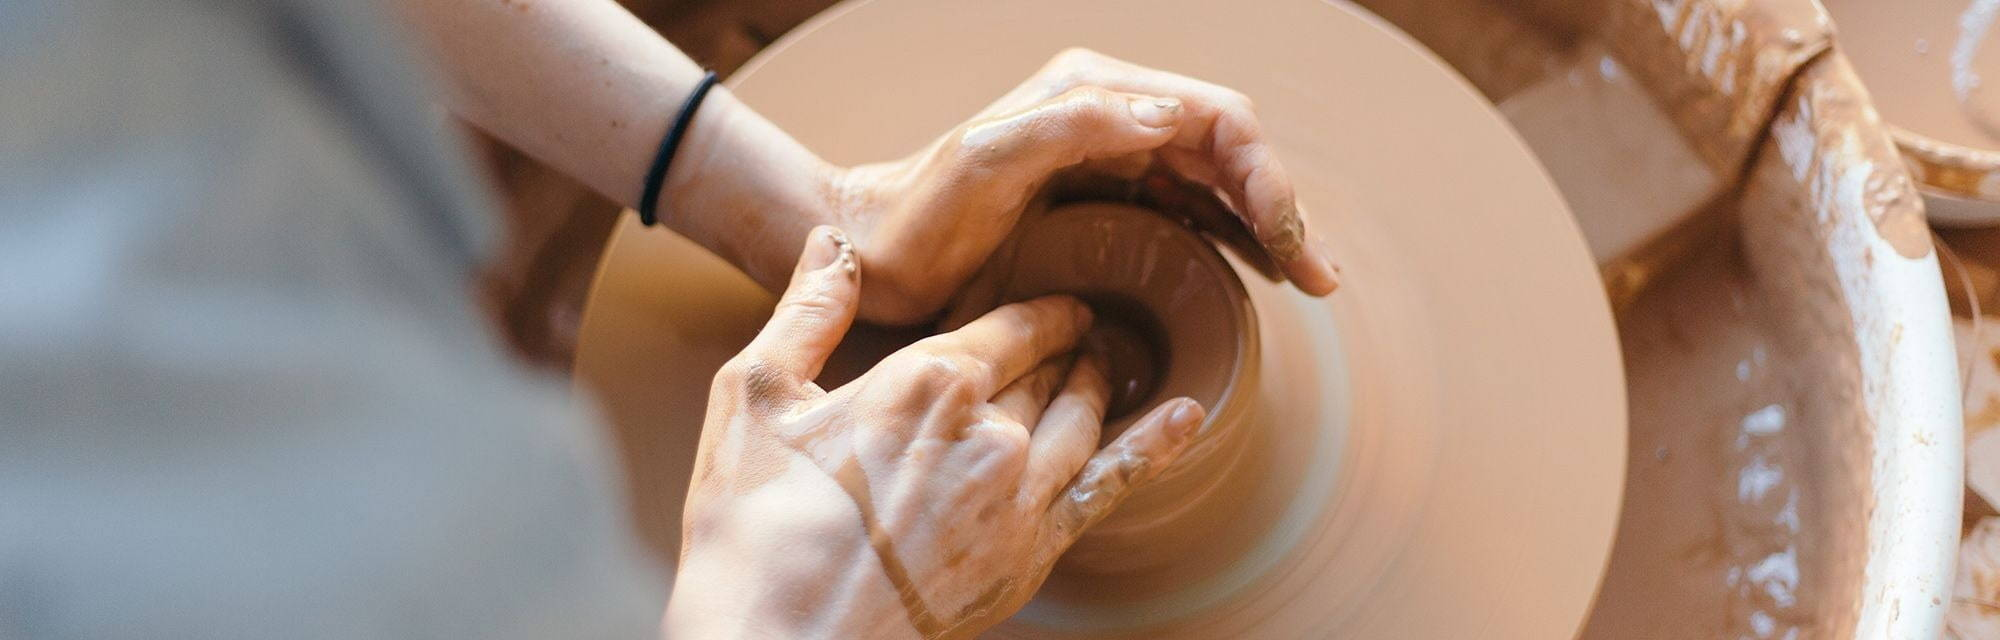 Hands at pottery wheel